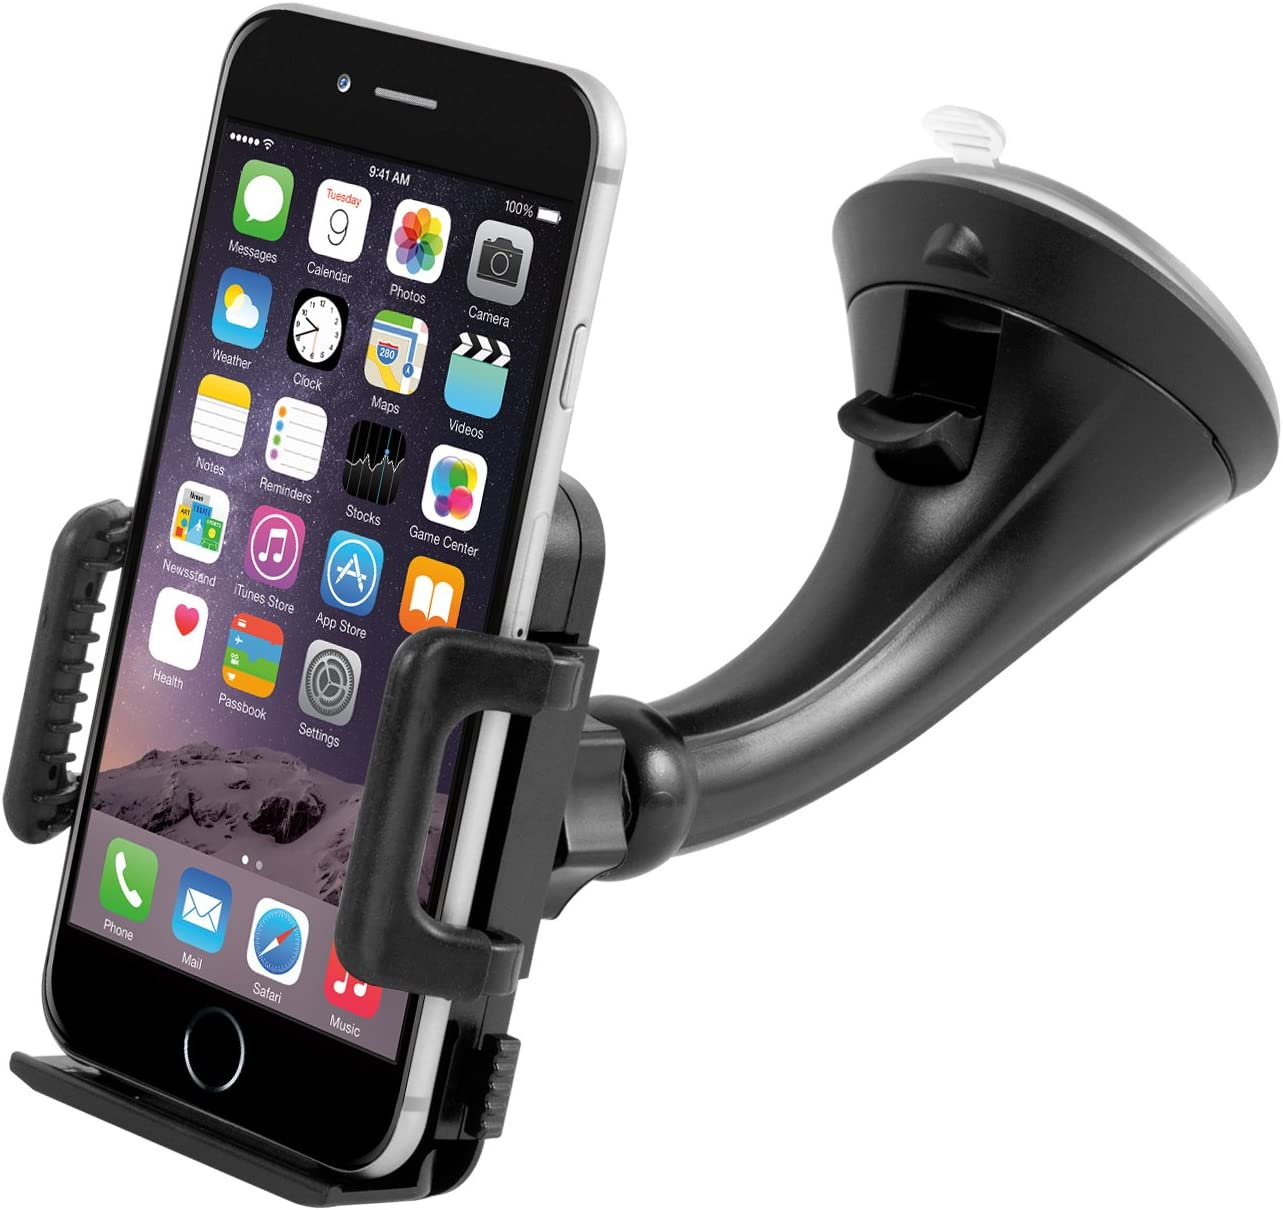 iPhone Xs XR X SE 8 7 Plus 6S 6 UGREEN Magnetic Car Mount Dashboard Cell Phone Holder Compatible for iPhone 11 Pro Samsung Galaxy Note20 S20 S10 S9 S8 Plus Note 10 9 8